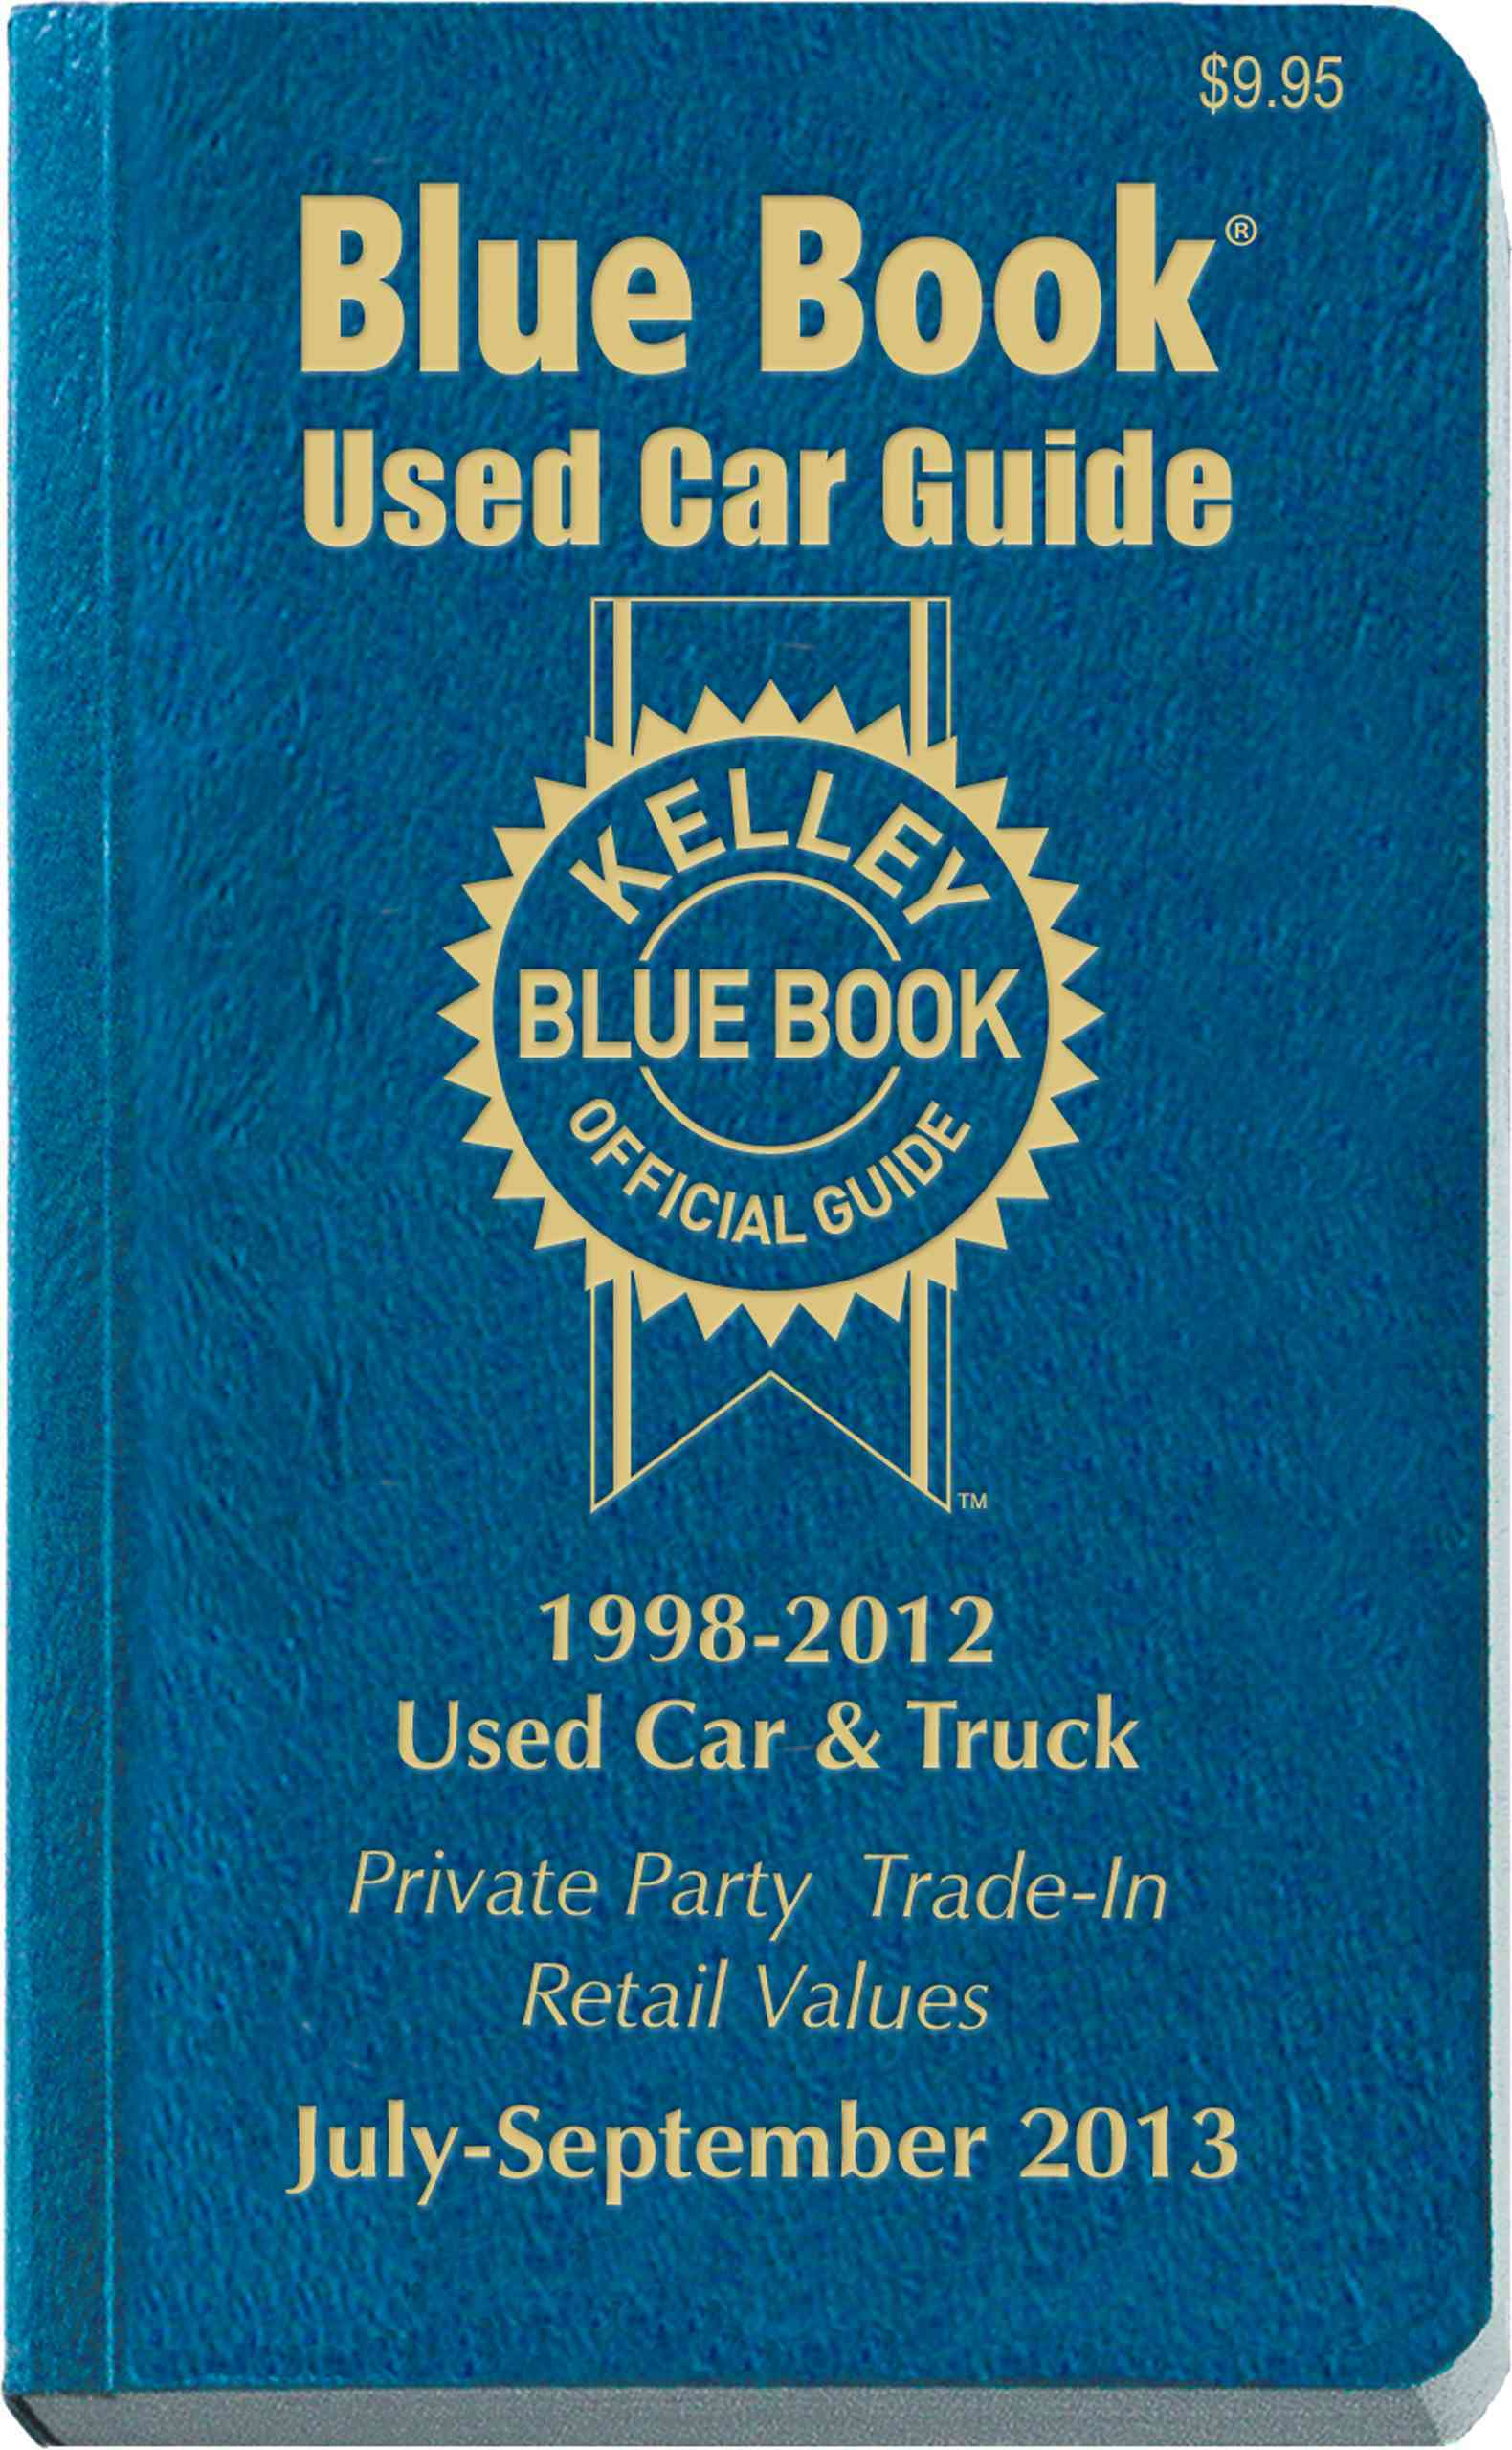 Kelley Blue Book Used Car Guide, July - Sept 2013 By Kelley Blue Book (COR)